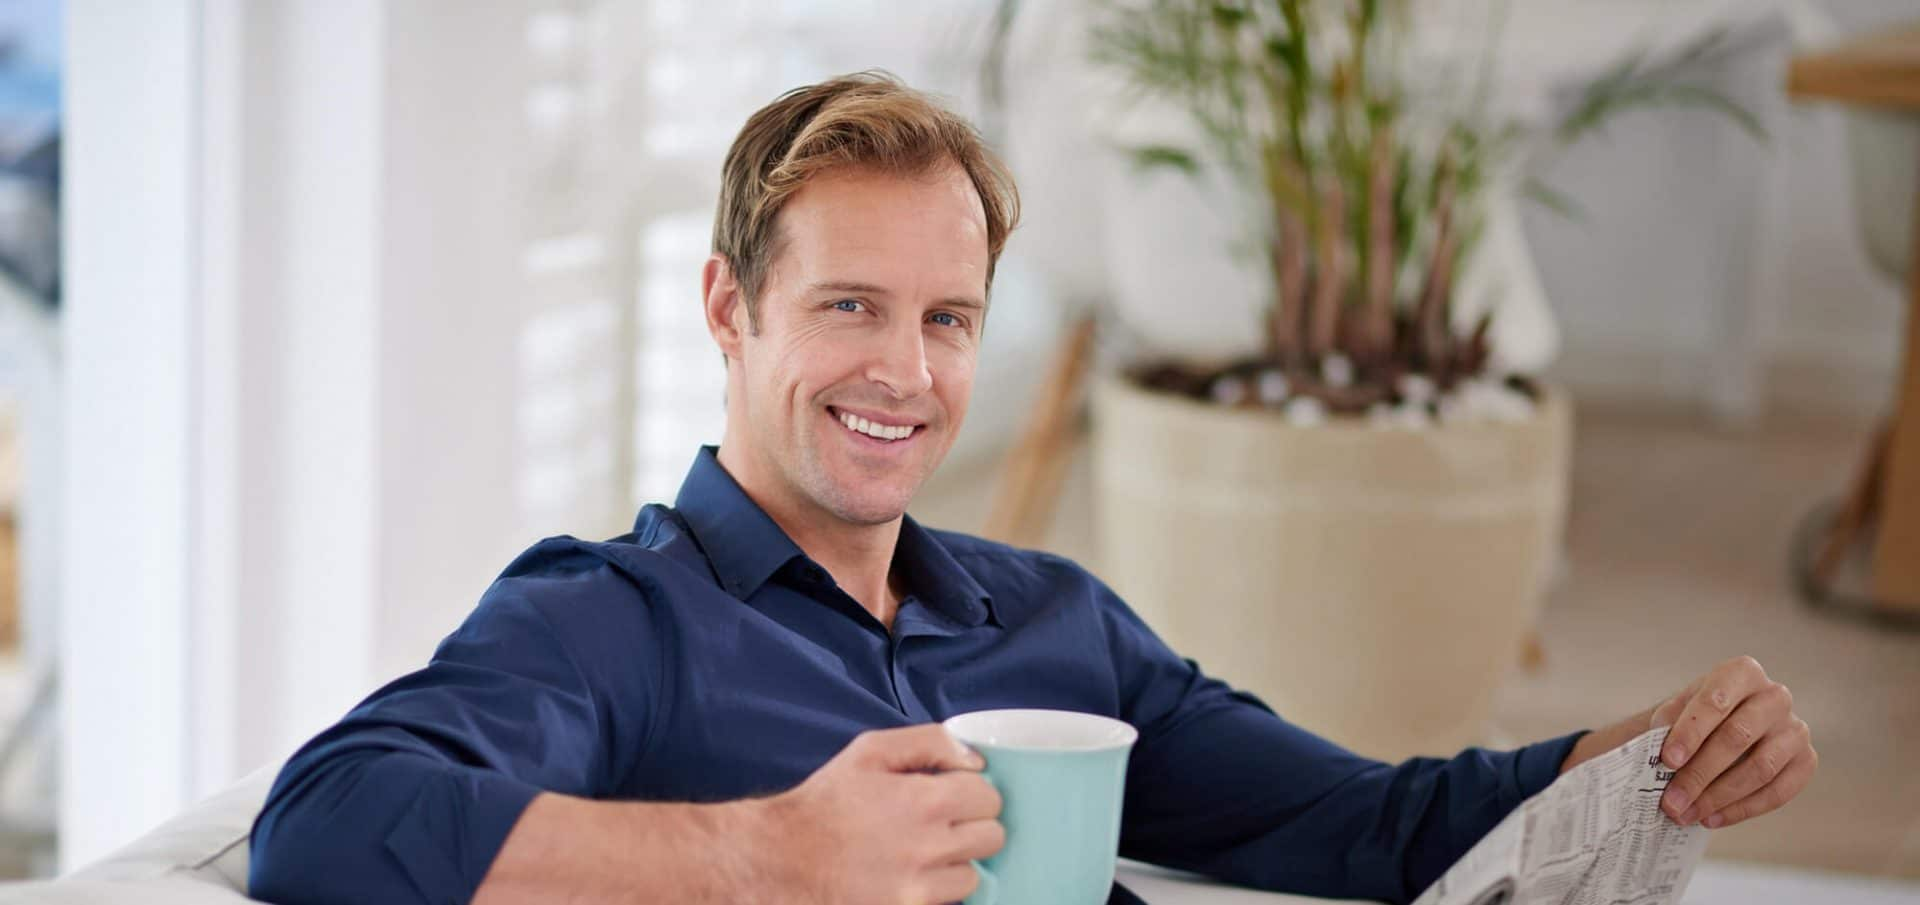 Happy-man-drink-coffee-after-hair transplant-by-hasci